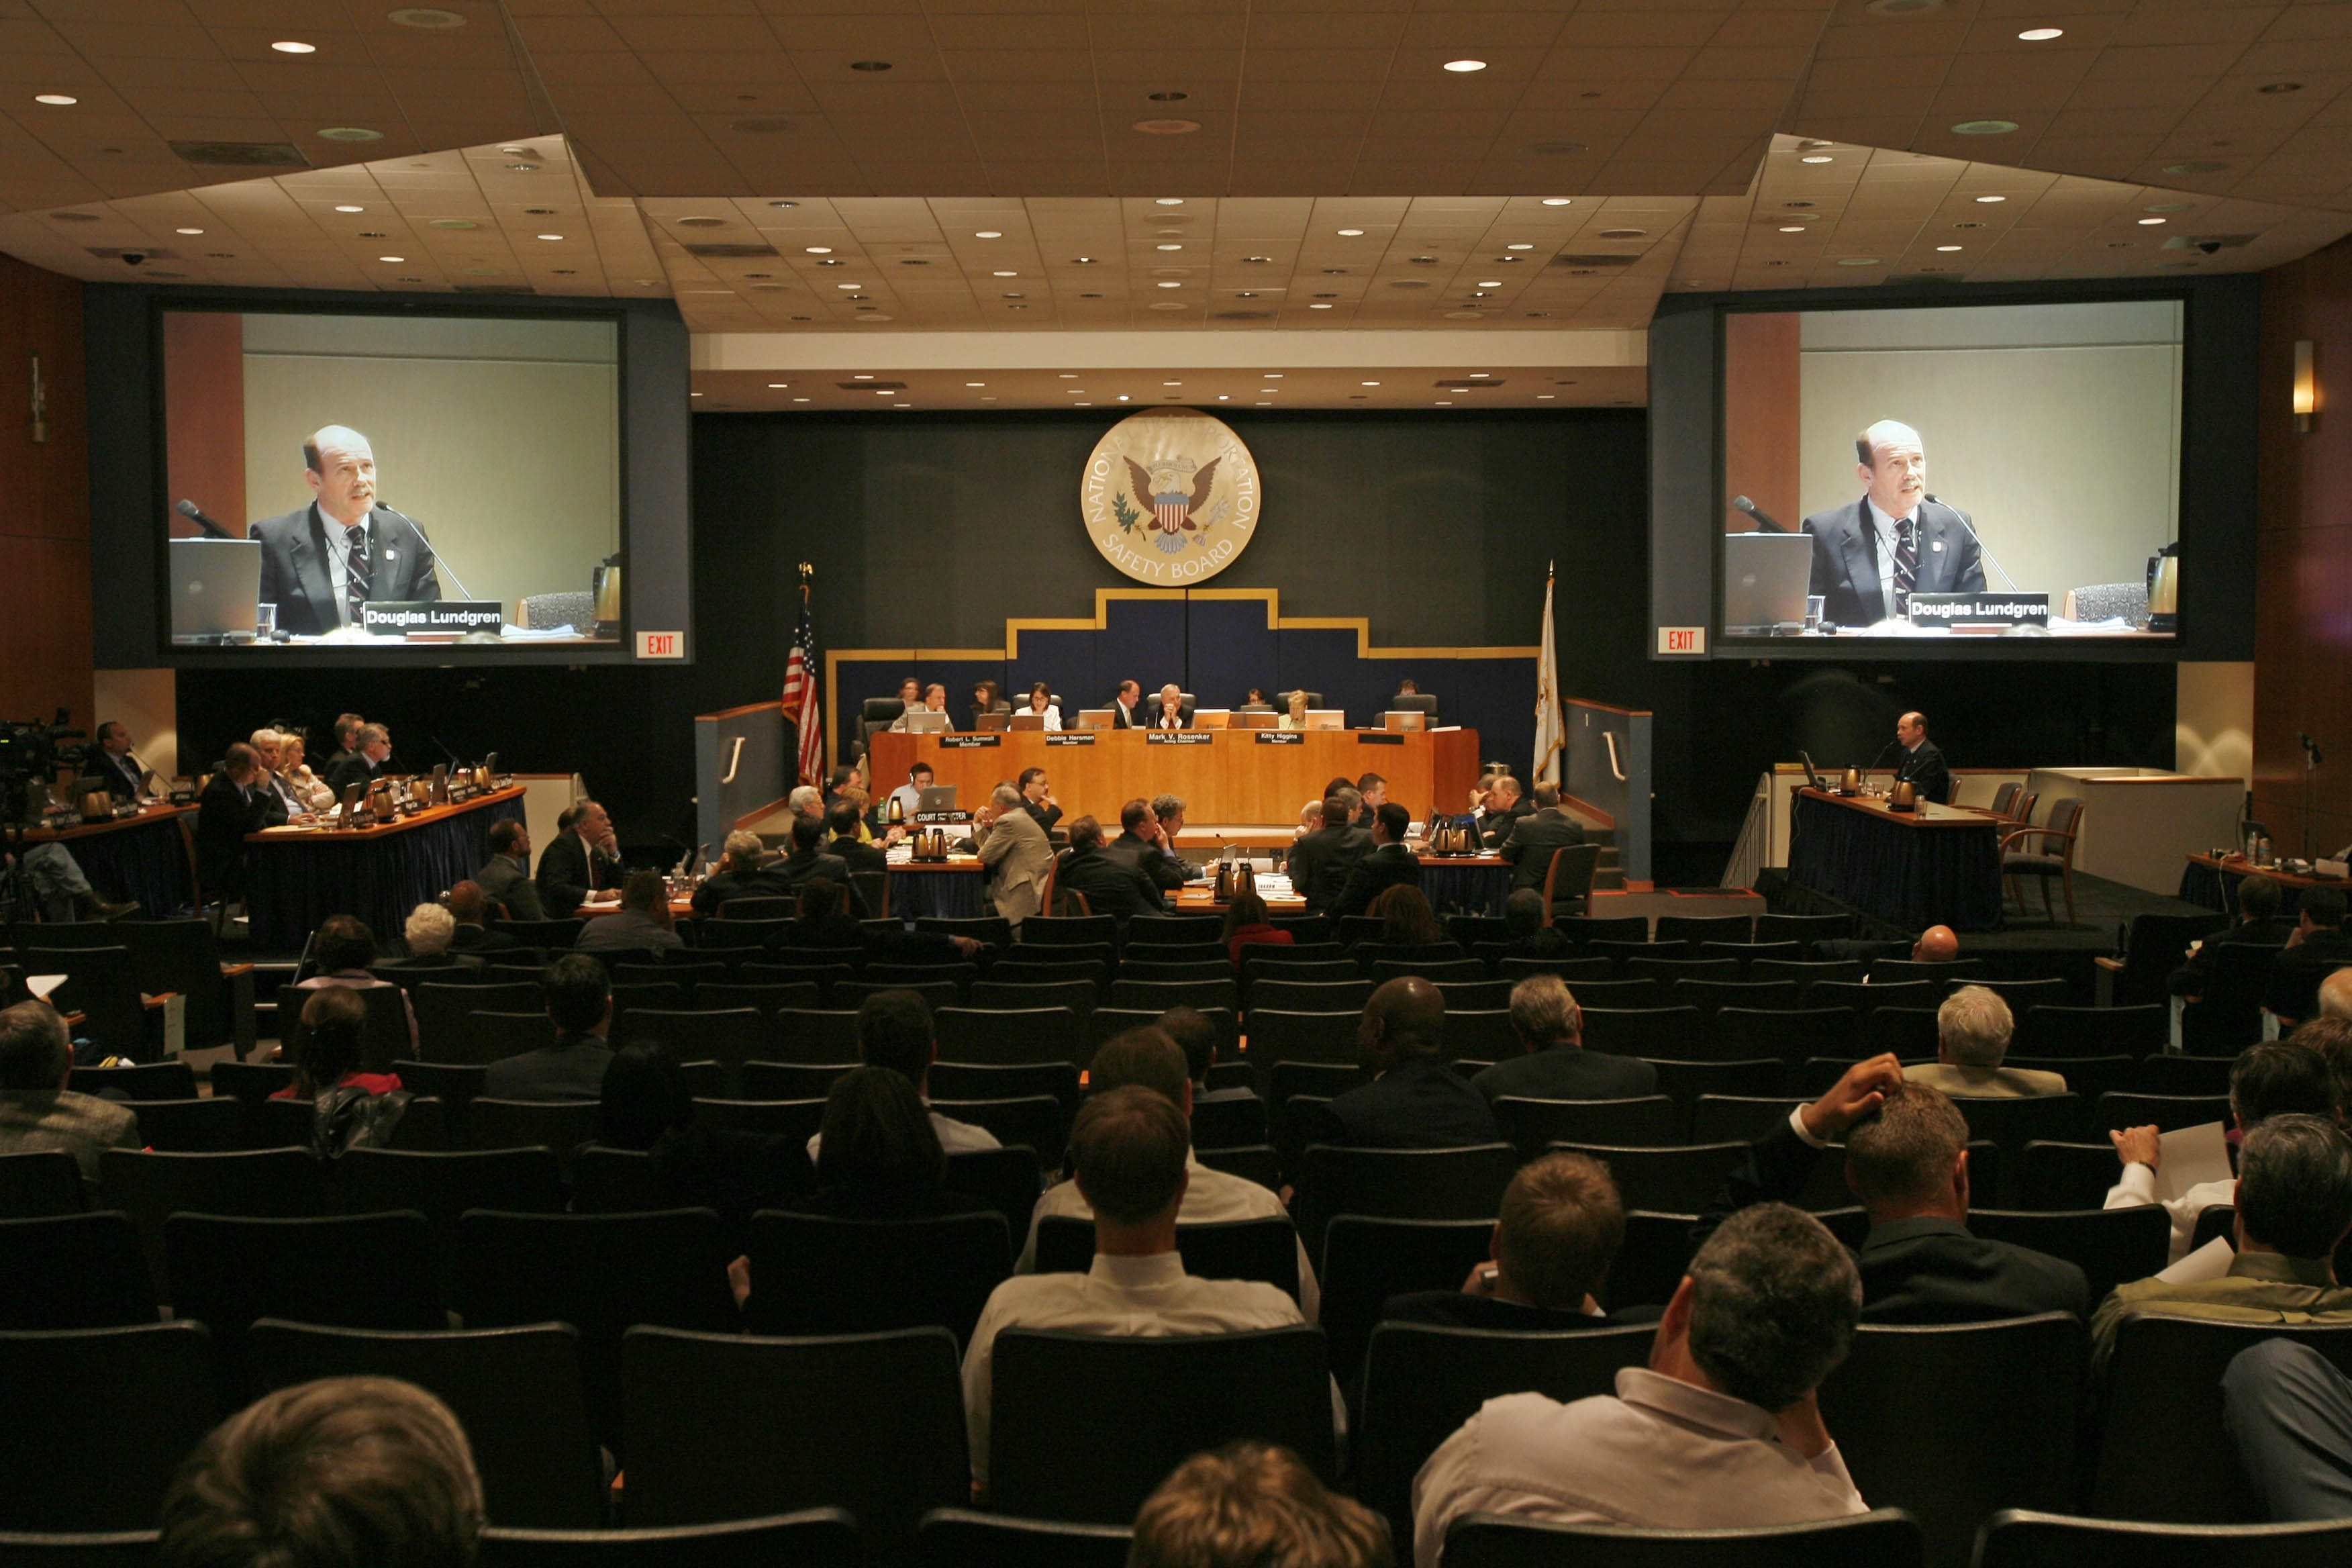 Douglas Lundgren of Colgan Air is projected on television screens as he testifies at the NTSB hearing about the Flight 3407 crash in the NTSB Conference Room in Washington, DC on May 13, 2008. (Derek Gee/Buffalo News file photo)